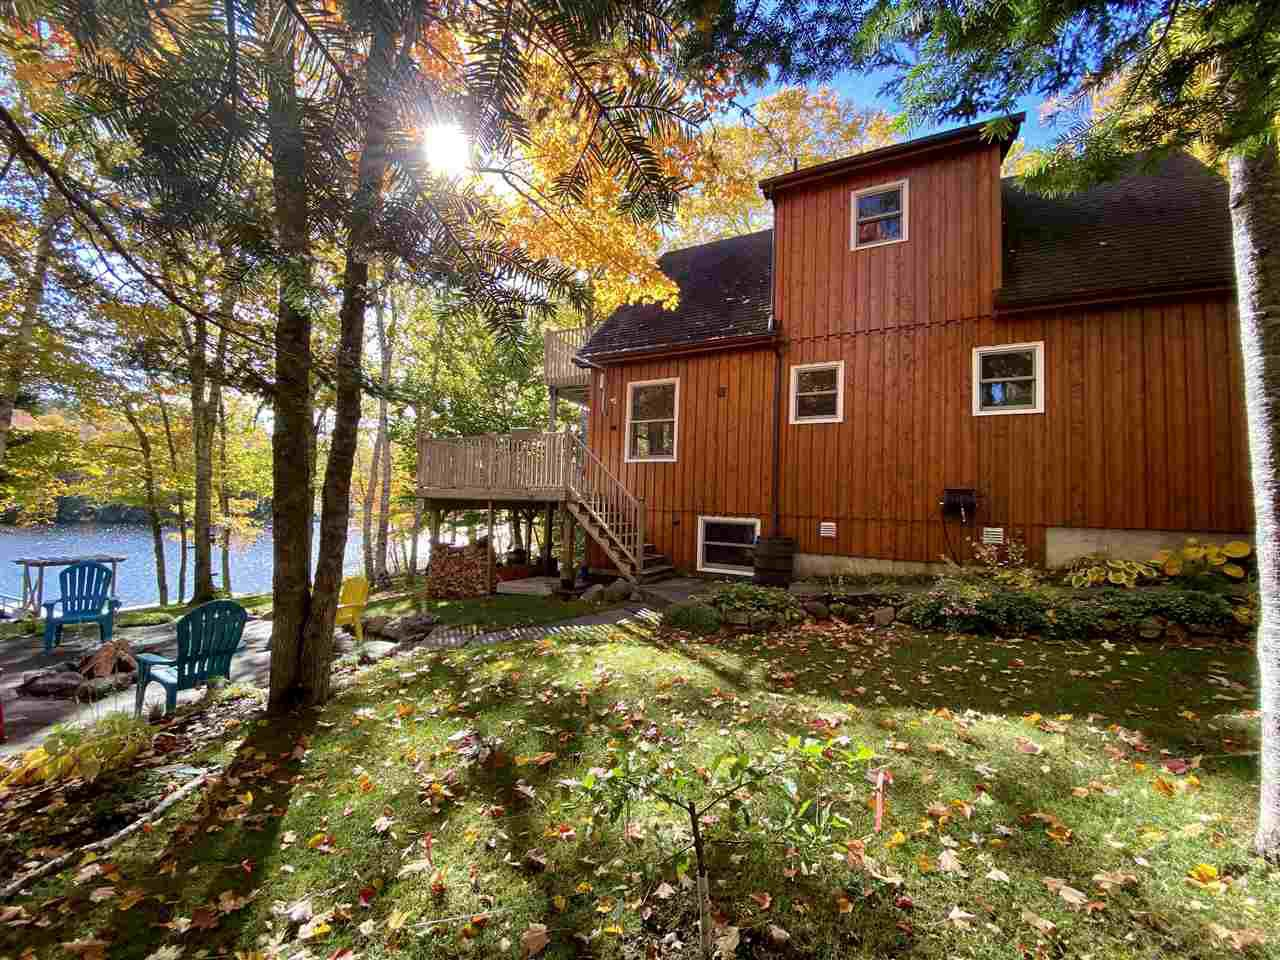 Main Photo: 138 Canyon Point Road in Vaughan: 403-Hants County Residential for sale (Annapolis Valley)  : MLS®# 202021854